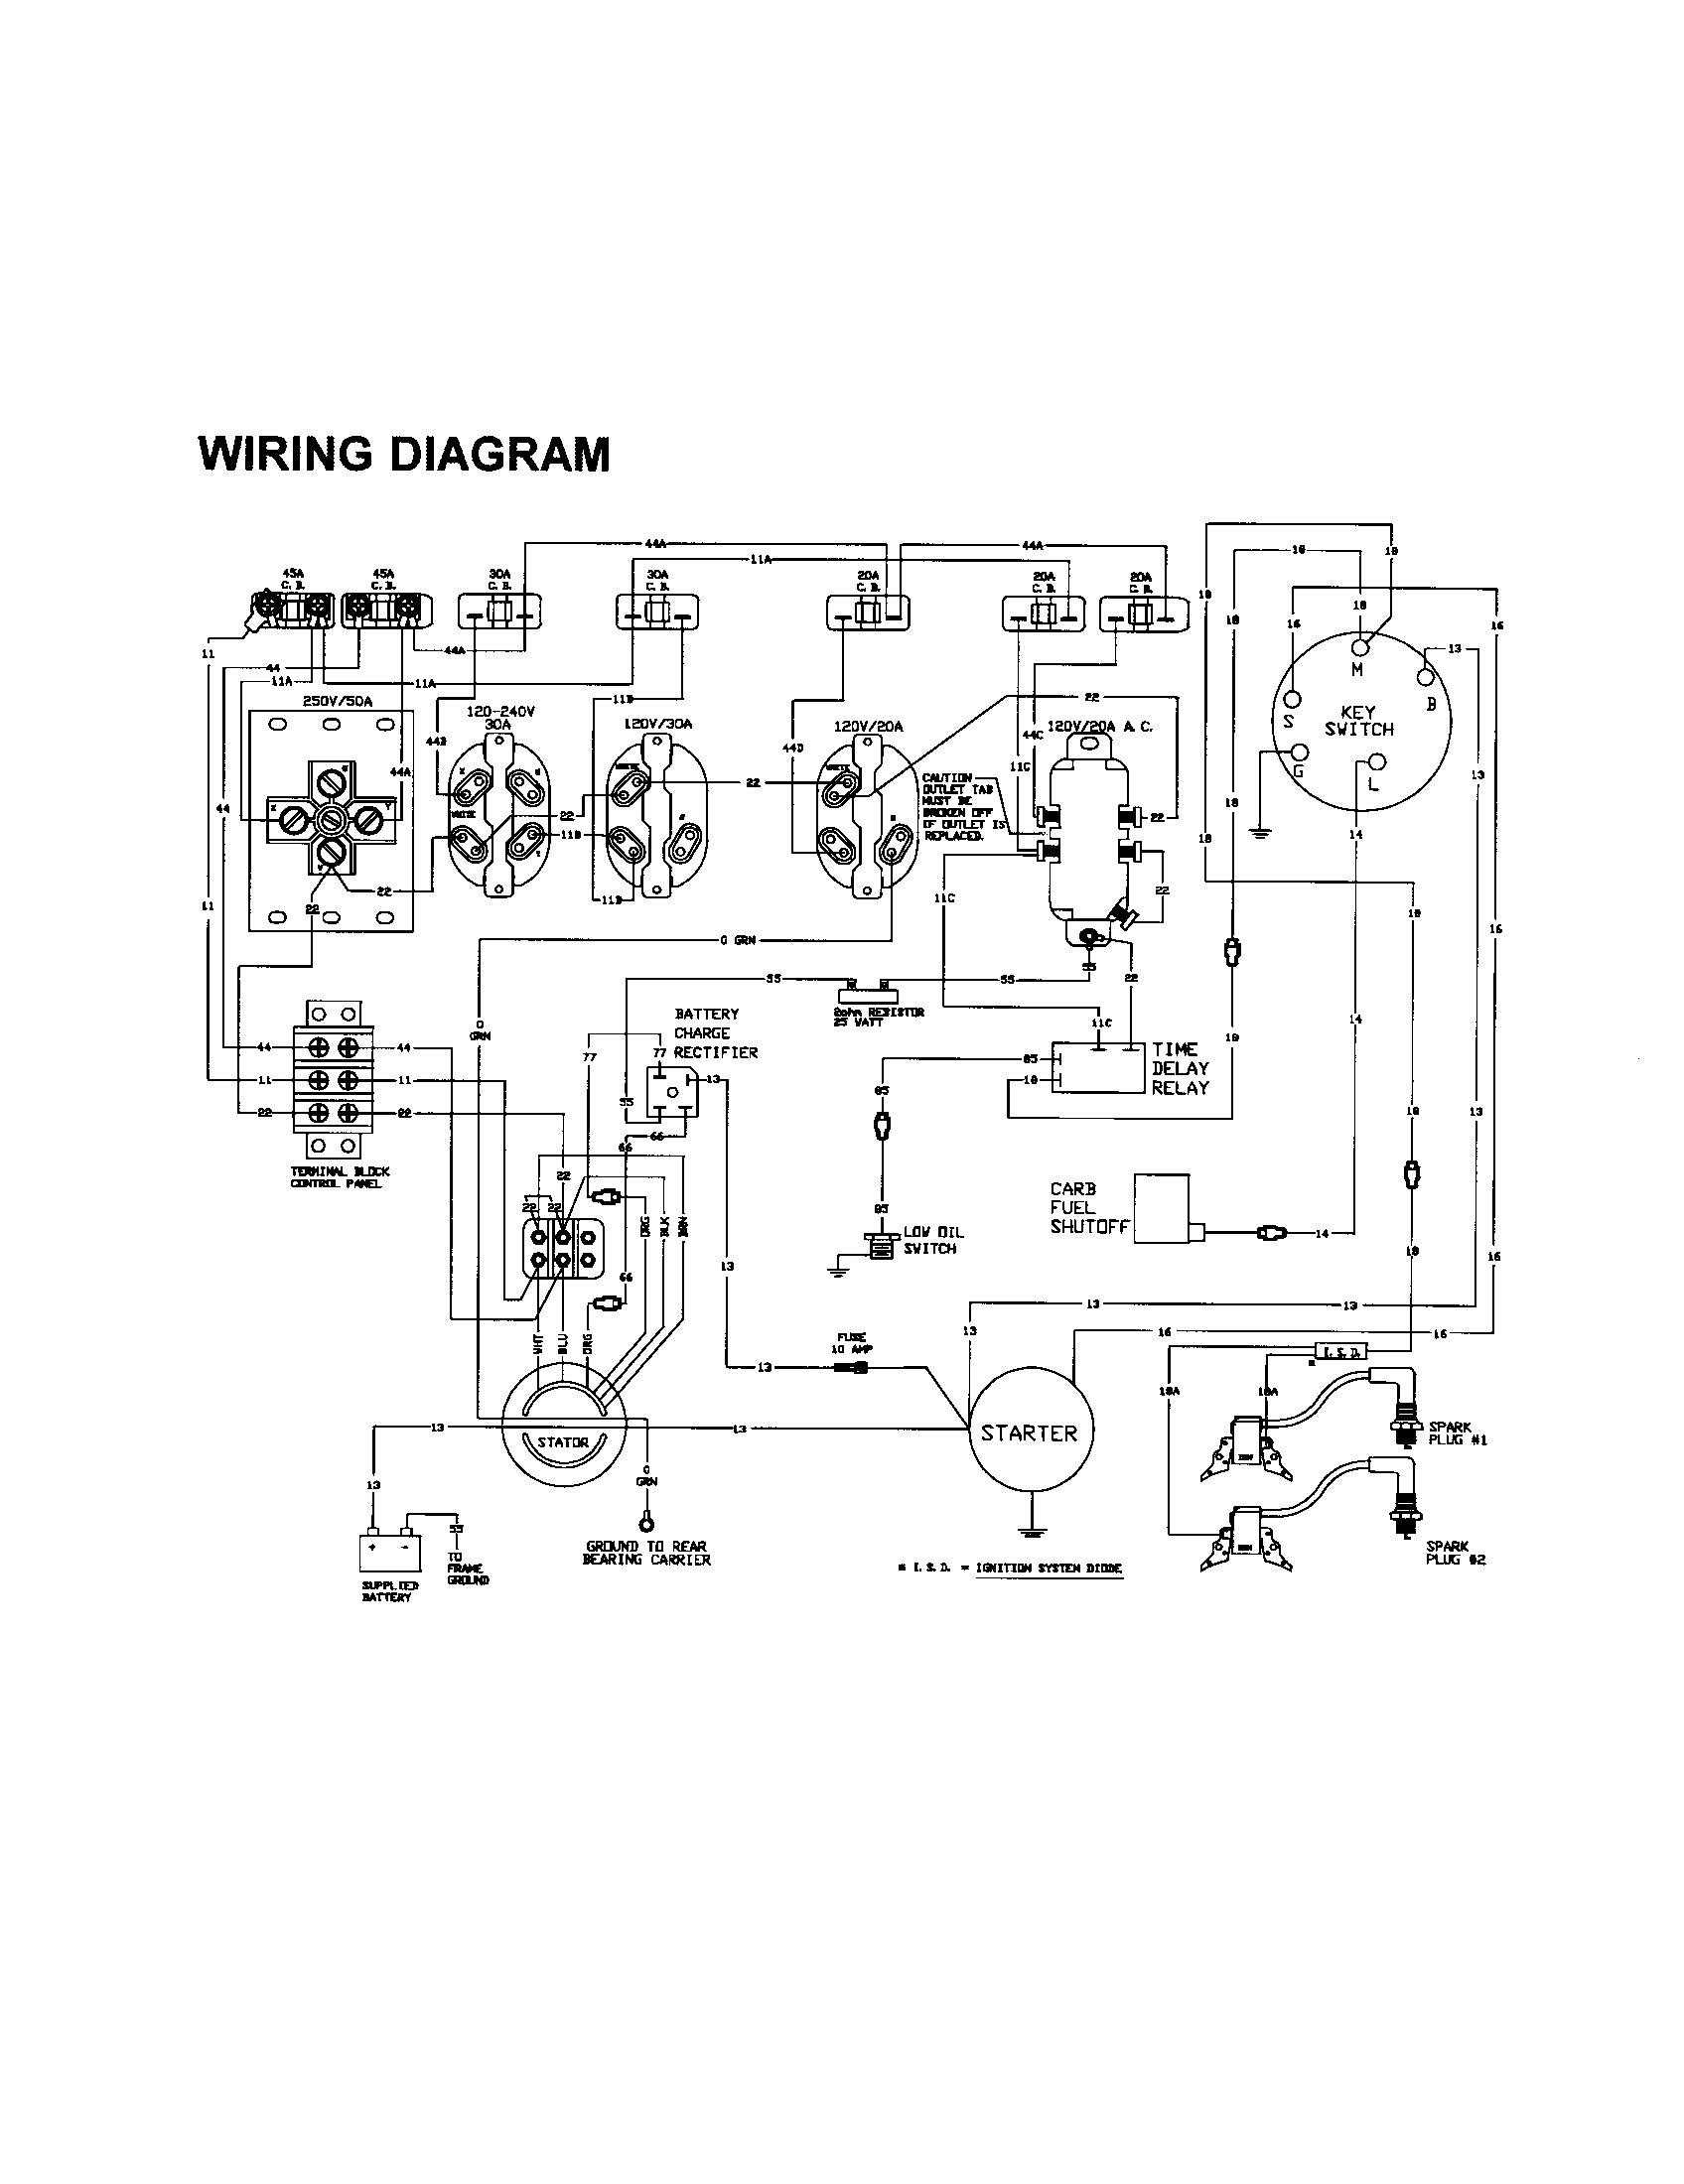 hight resolution of onan 4000 generator wiring diagram onan free engine image for user